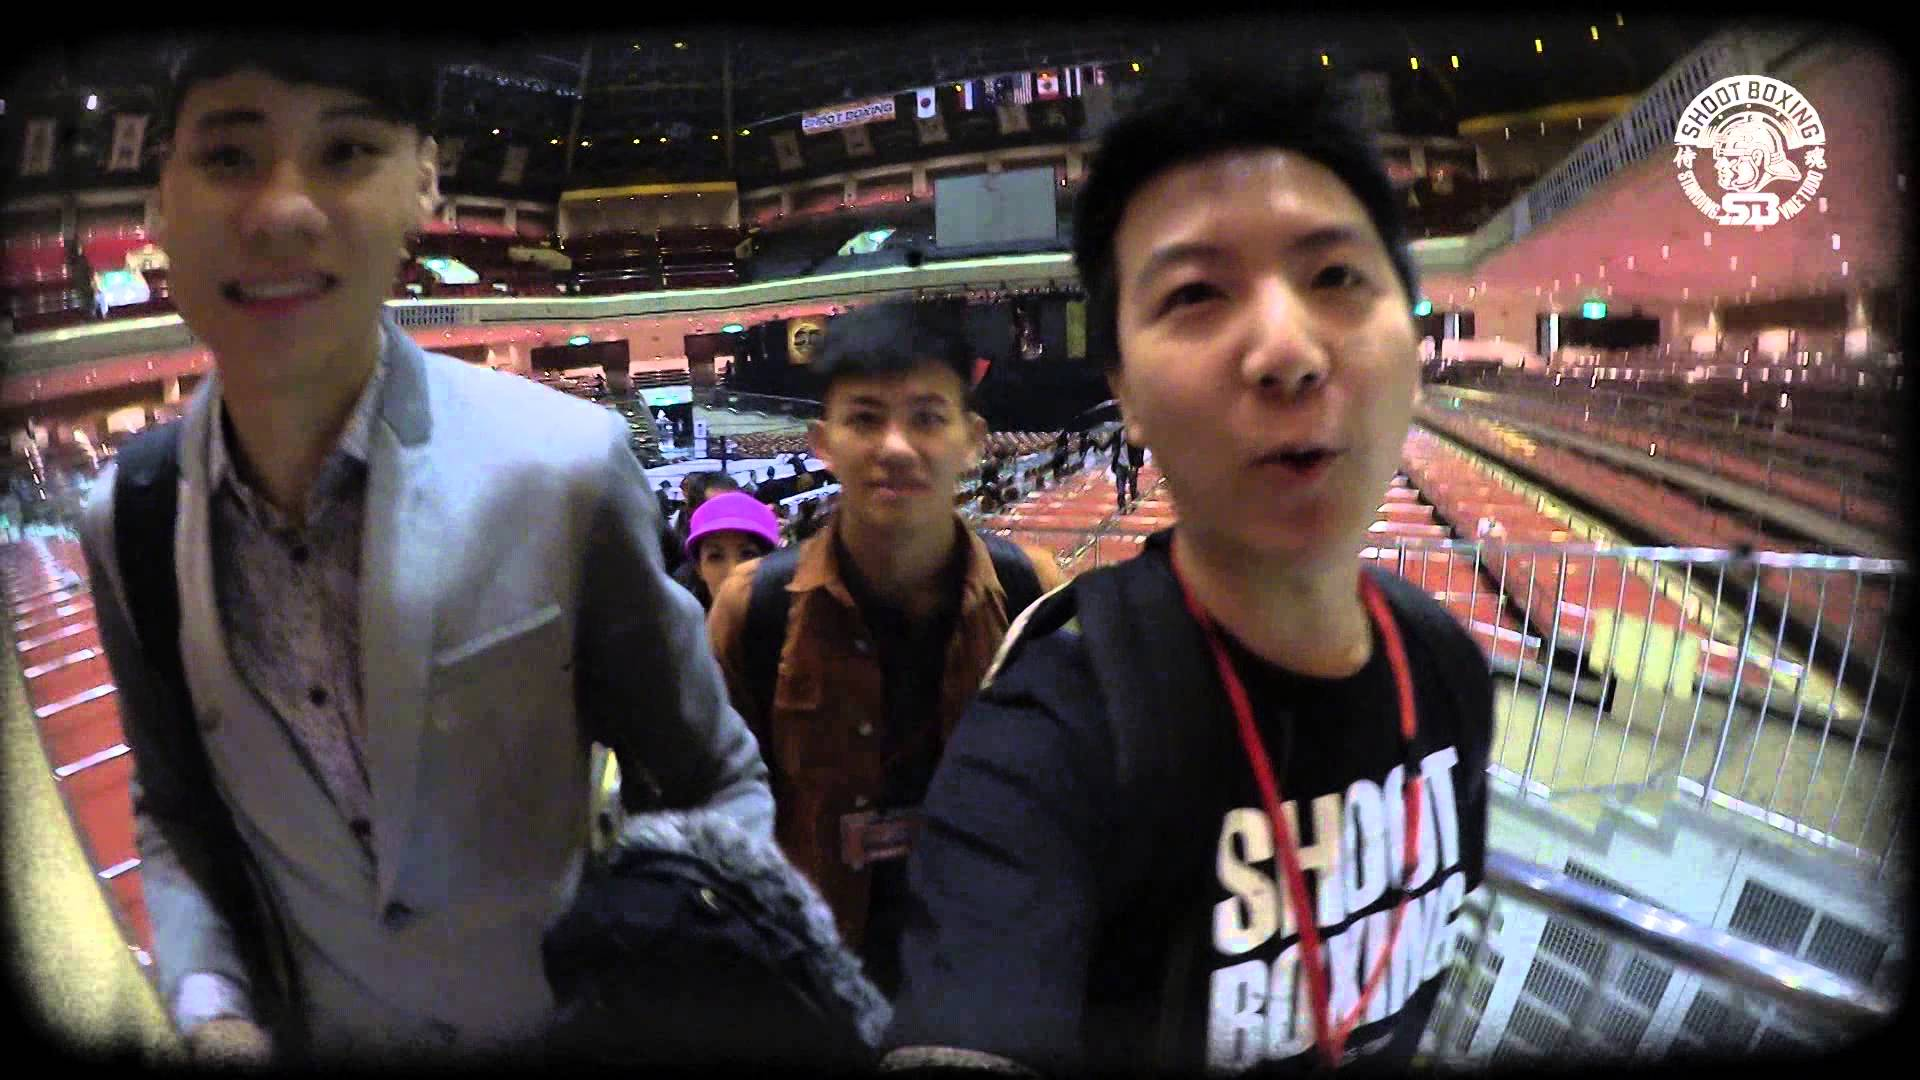 SHOOT BOXING GROUND ZERO TOKYO 2013 – Highlight (香港 Shoot Boxing TV Channel 拍攝花絮)